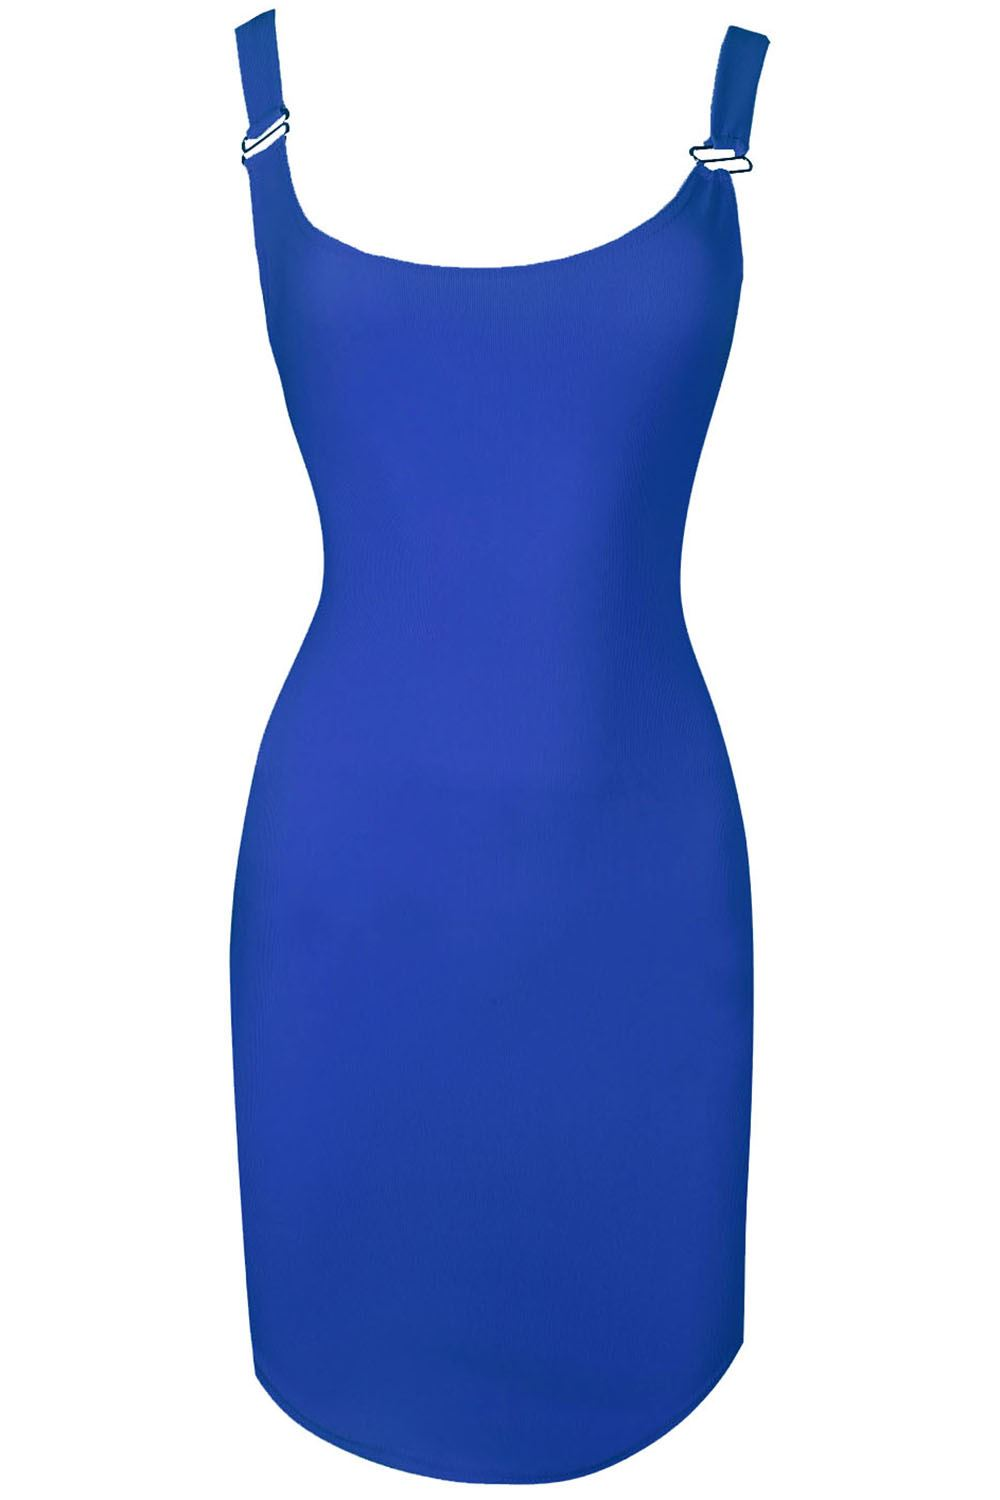 Ladies-Womens-Bodycon-Tunic-Dress-Pinafore-Ribbed-Curved-Hem-Braces-Plus-Size